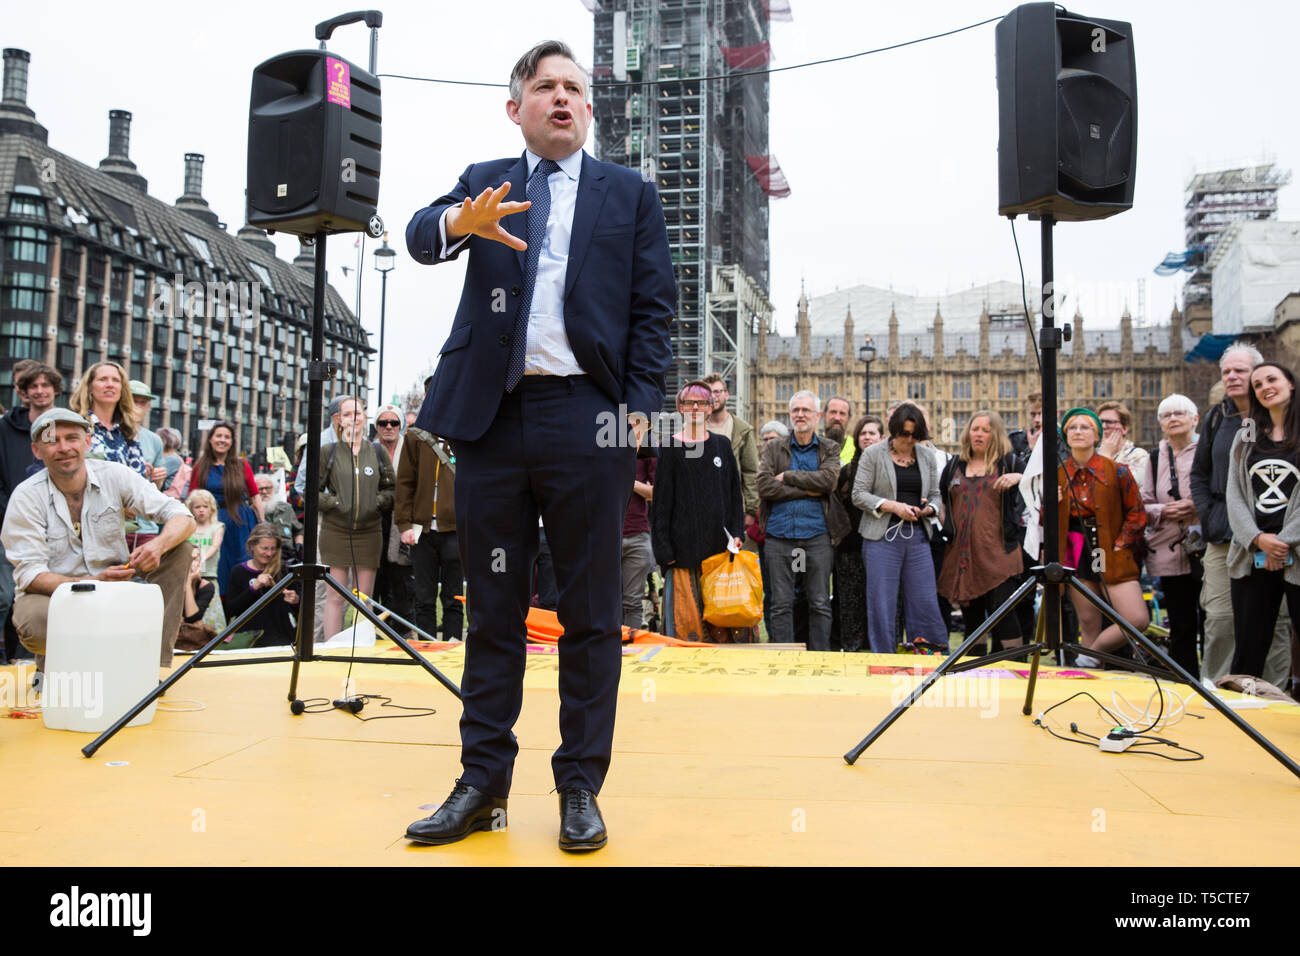 London, UK. 23rd April 2019. Jon Ashworth MP, Shadow Health Minister, addresses climate change activists from Extinction Rebellion at an assembly in Parliament Square prior to an attempt to deliver to Parliament activists' letters requesting meetings to discuss climate change with their Members of Parliament. Credit: Mark Kerrison/Alamy Live News - Stock Image